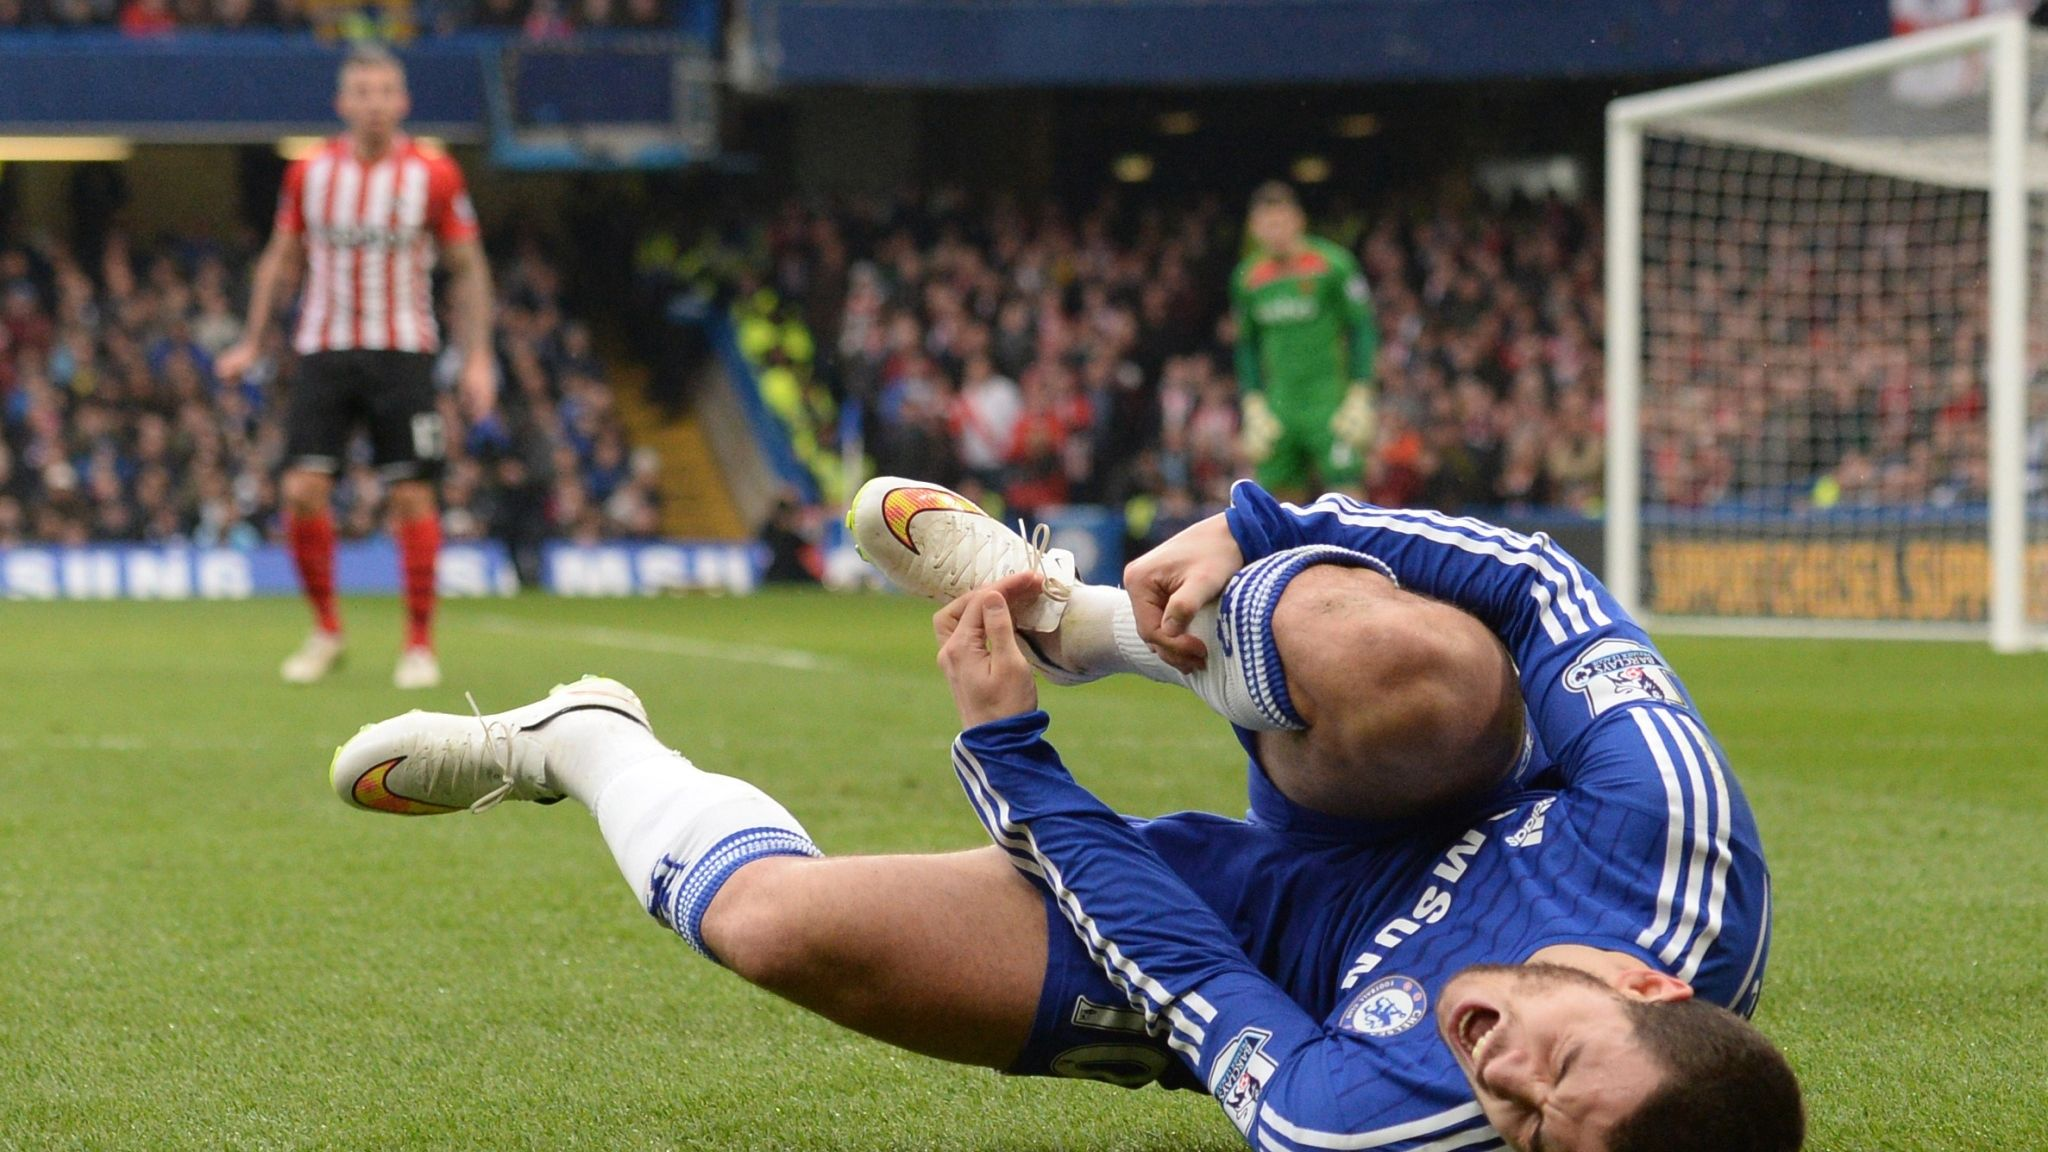 Eden Hazard already getting protection from referees, stats say